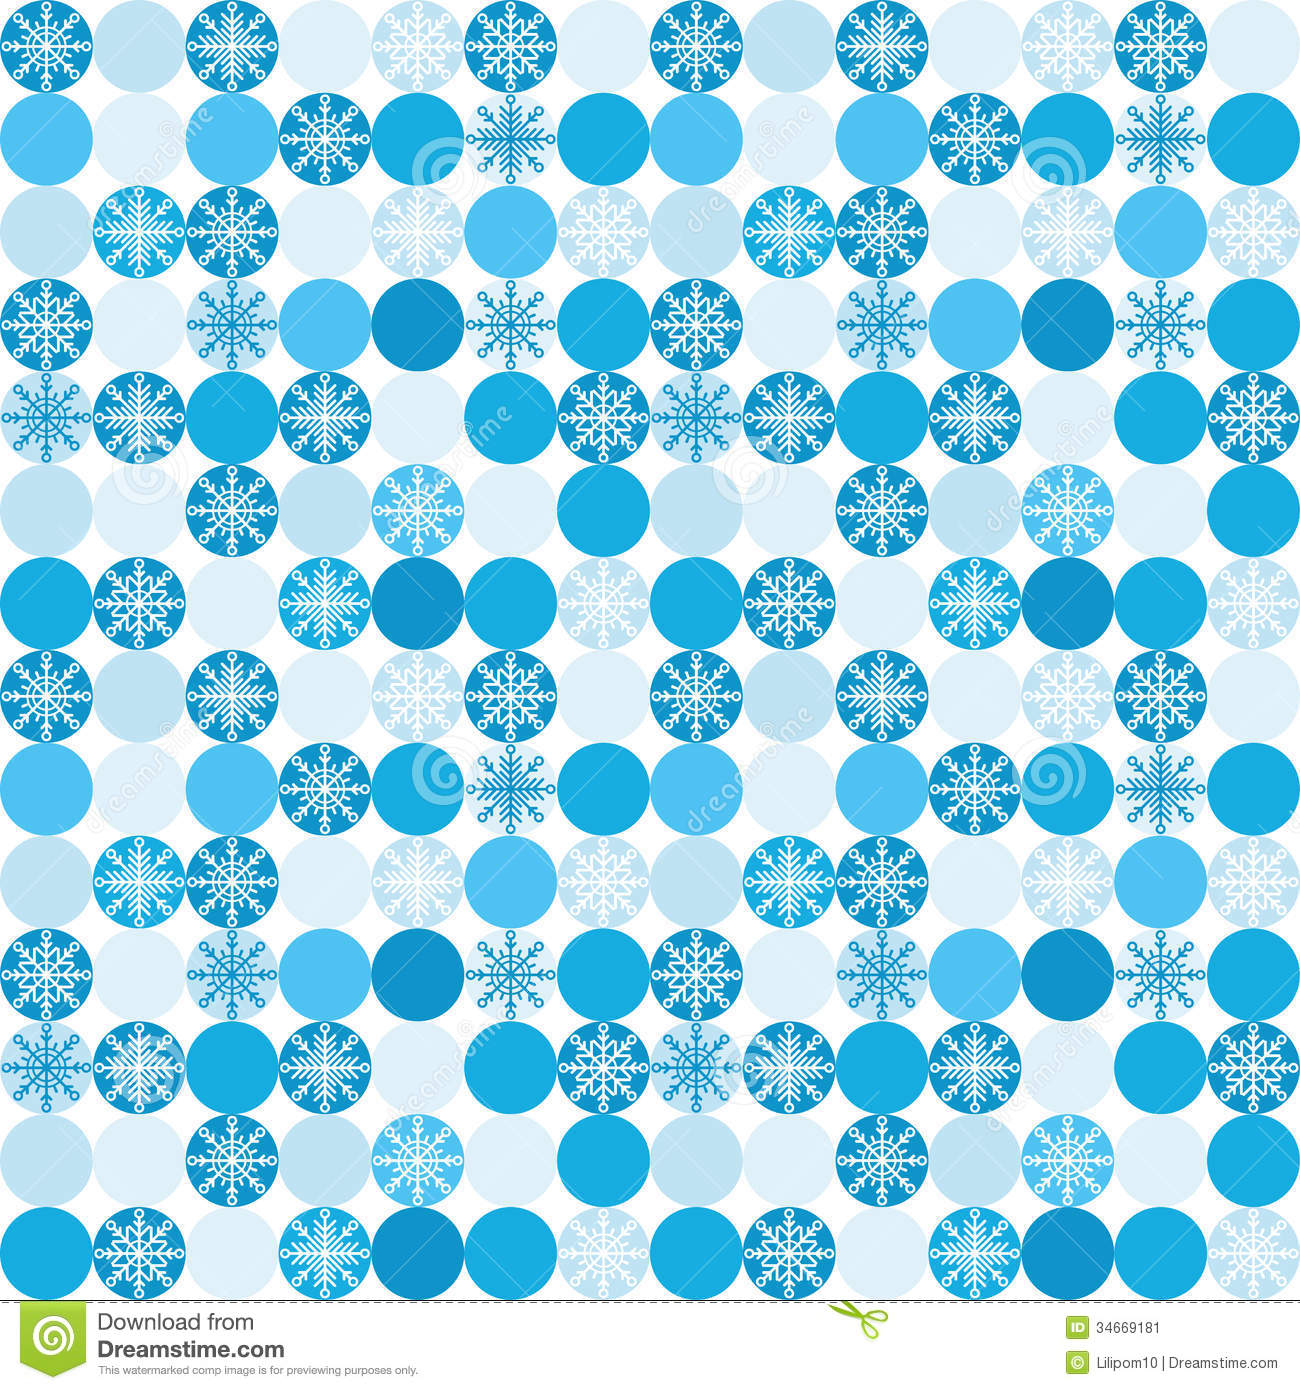 Seamless Background With Snowflakes In Circles Stock